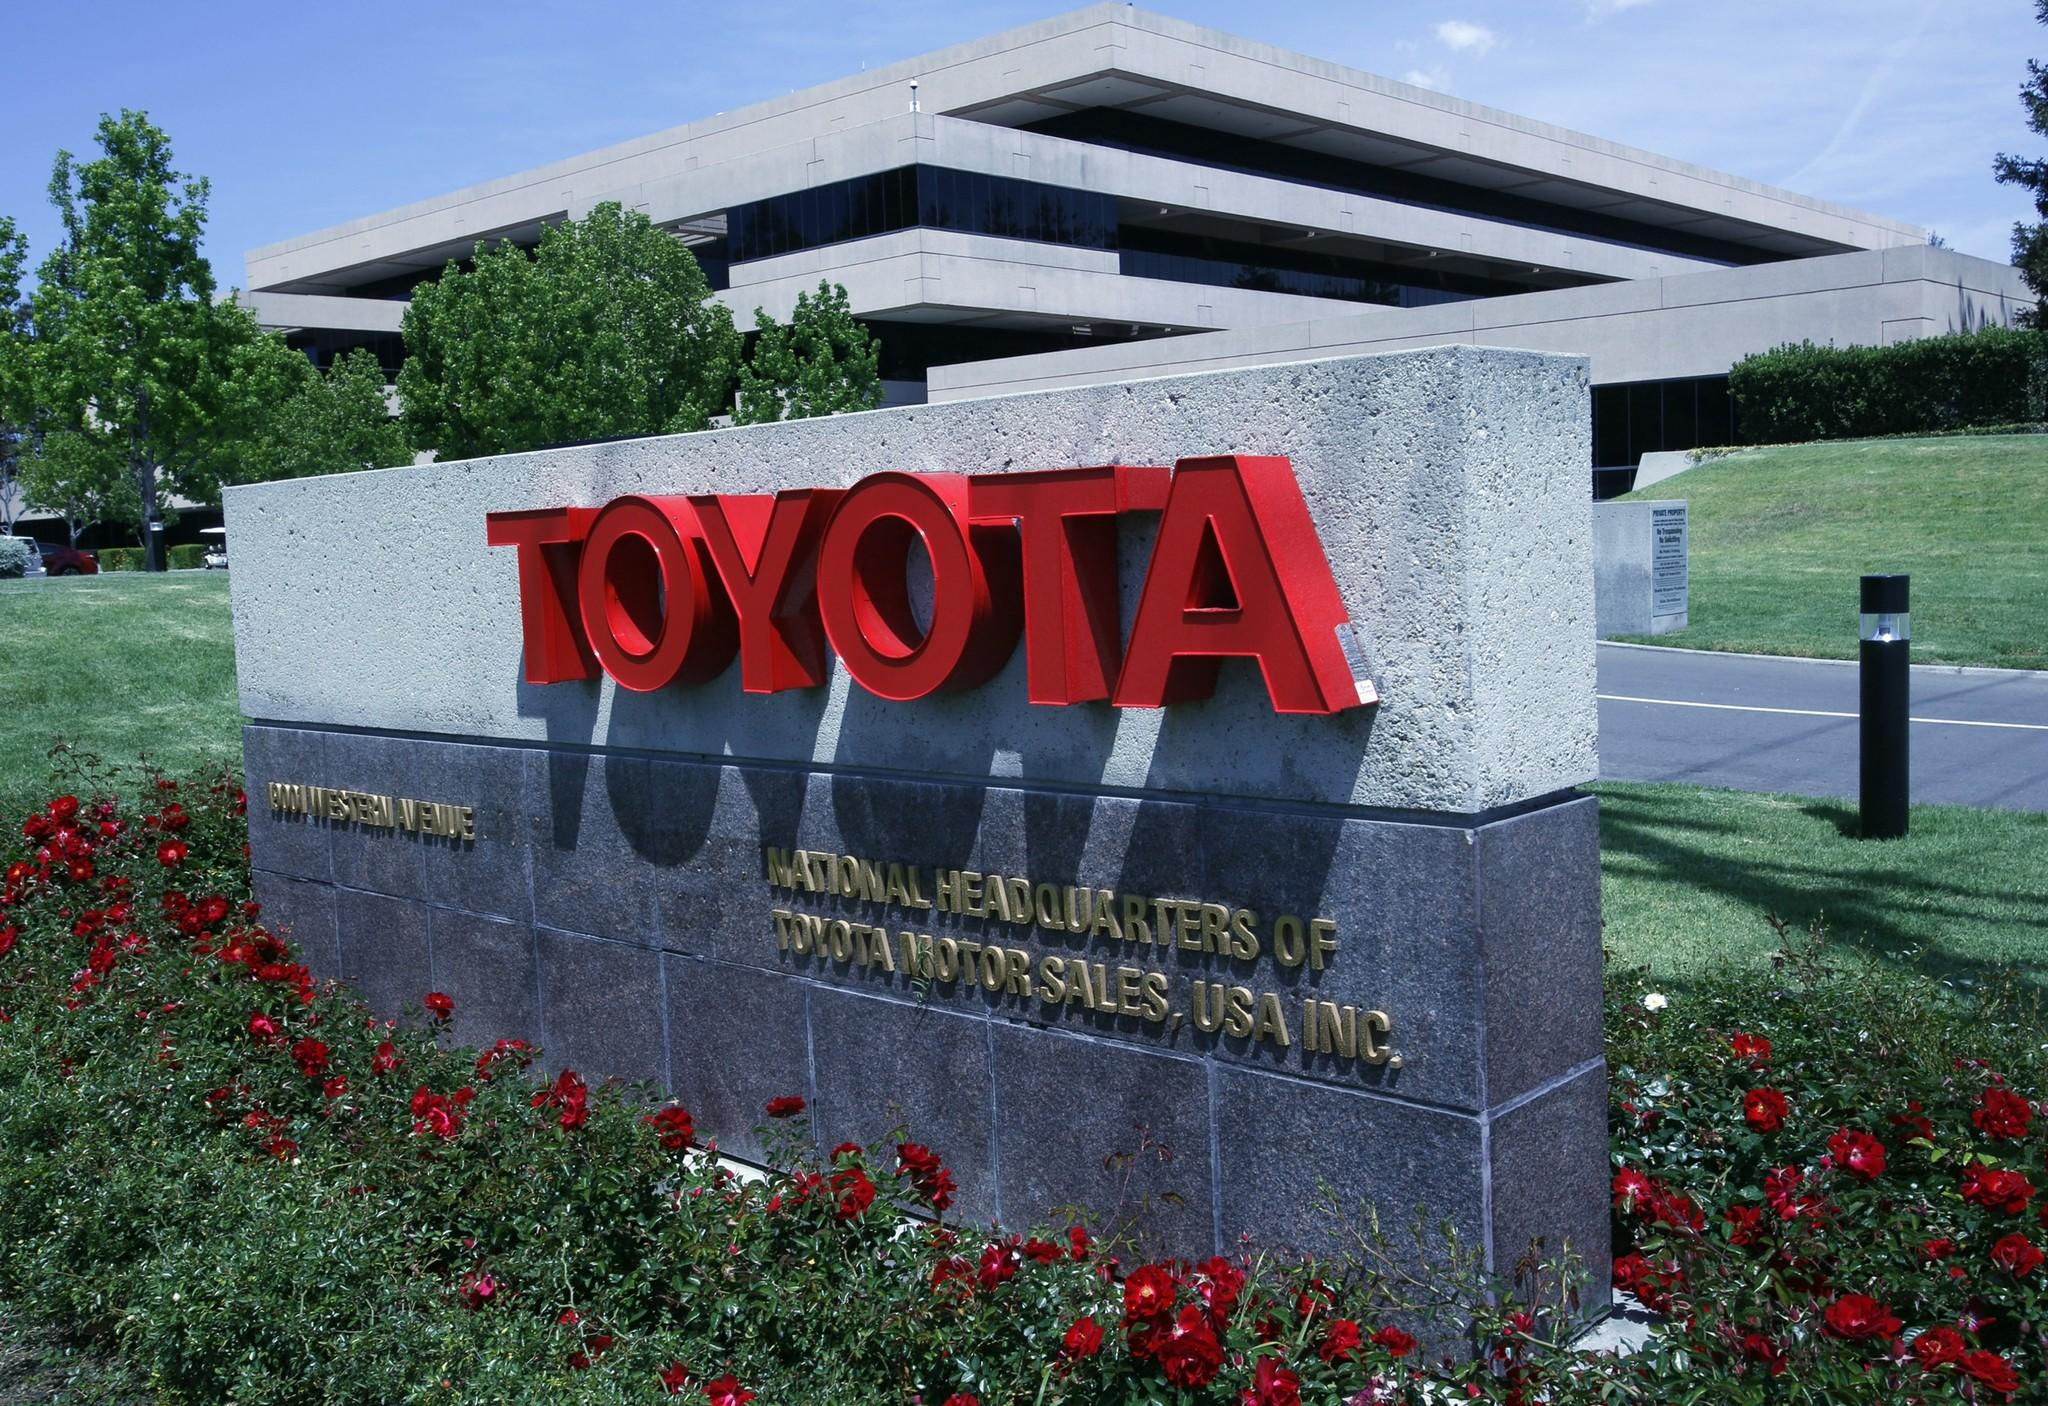 About%205%2C300%20people%20work%20at%20Toyota%27s%20North%20American%20sales%20and%20marketing%20headquarters%20in%20Torrance.%20%28Anne%20Cusack%20/%20%20Los%20Angeles%20Times%29